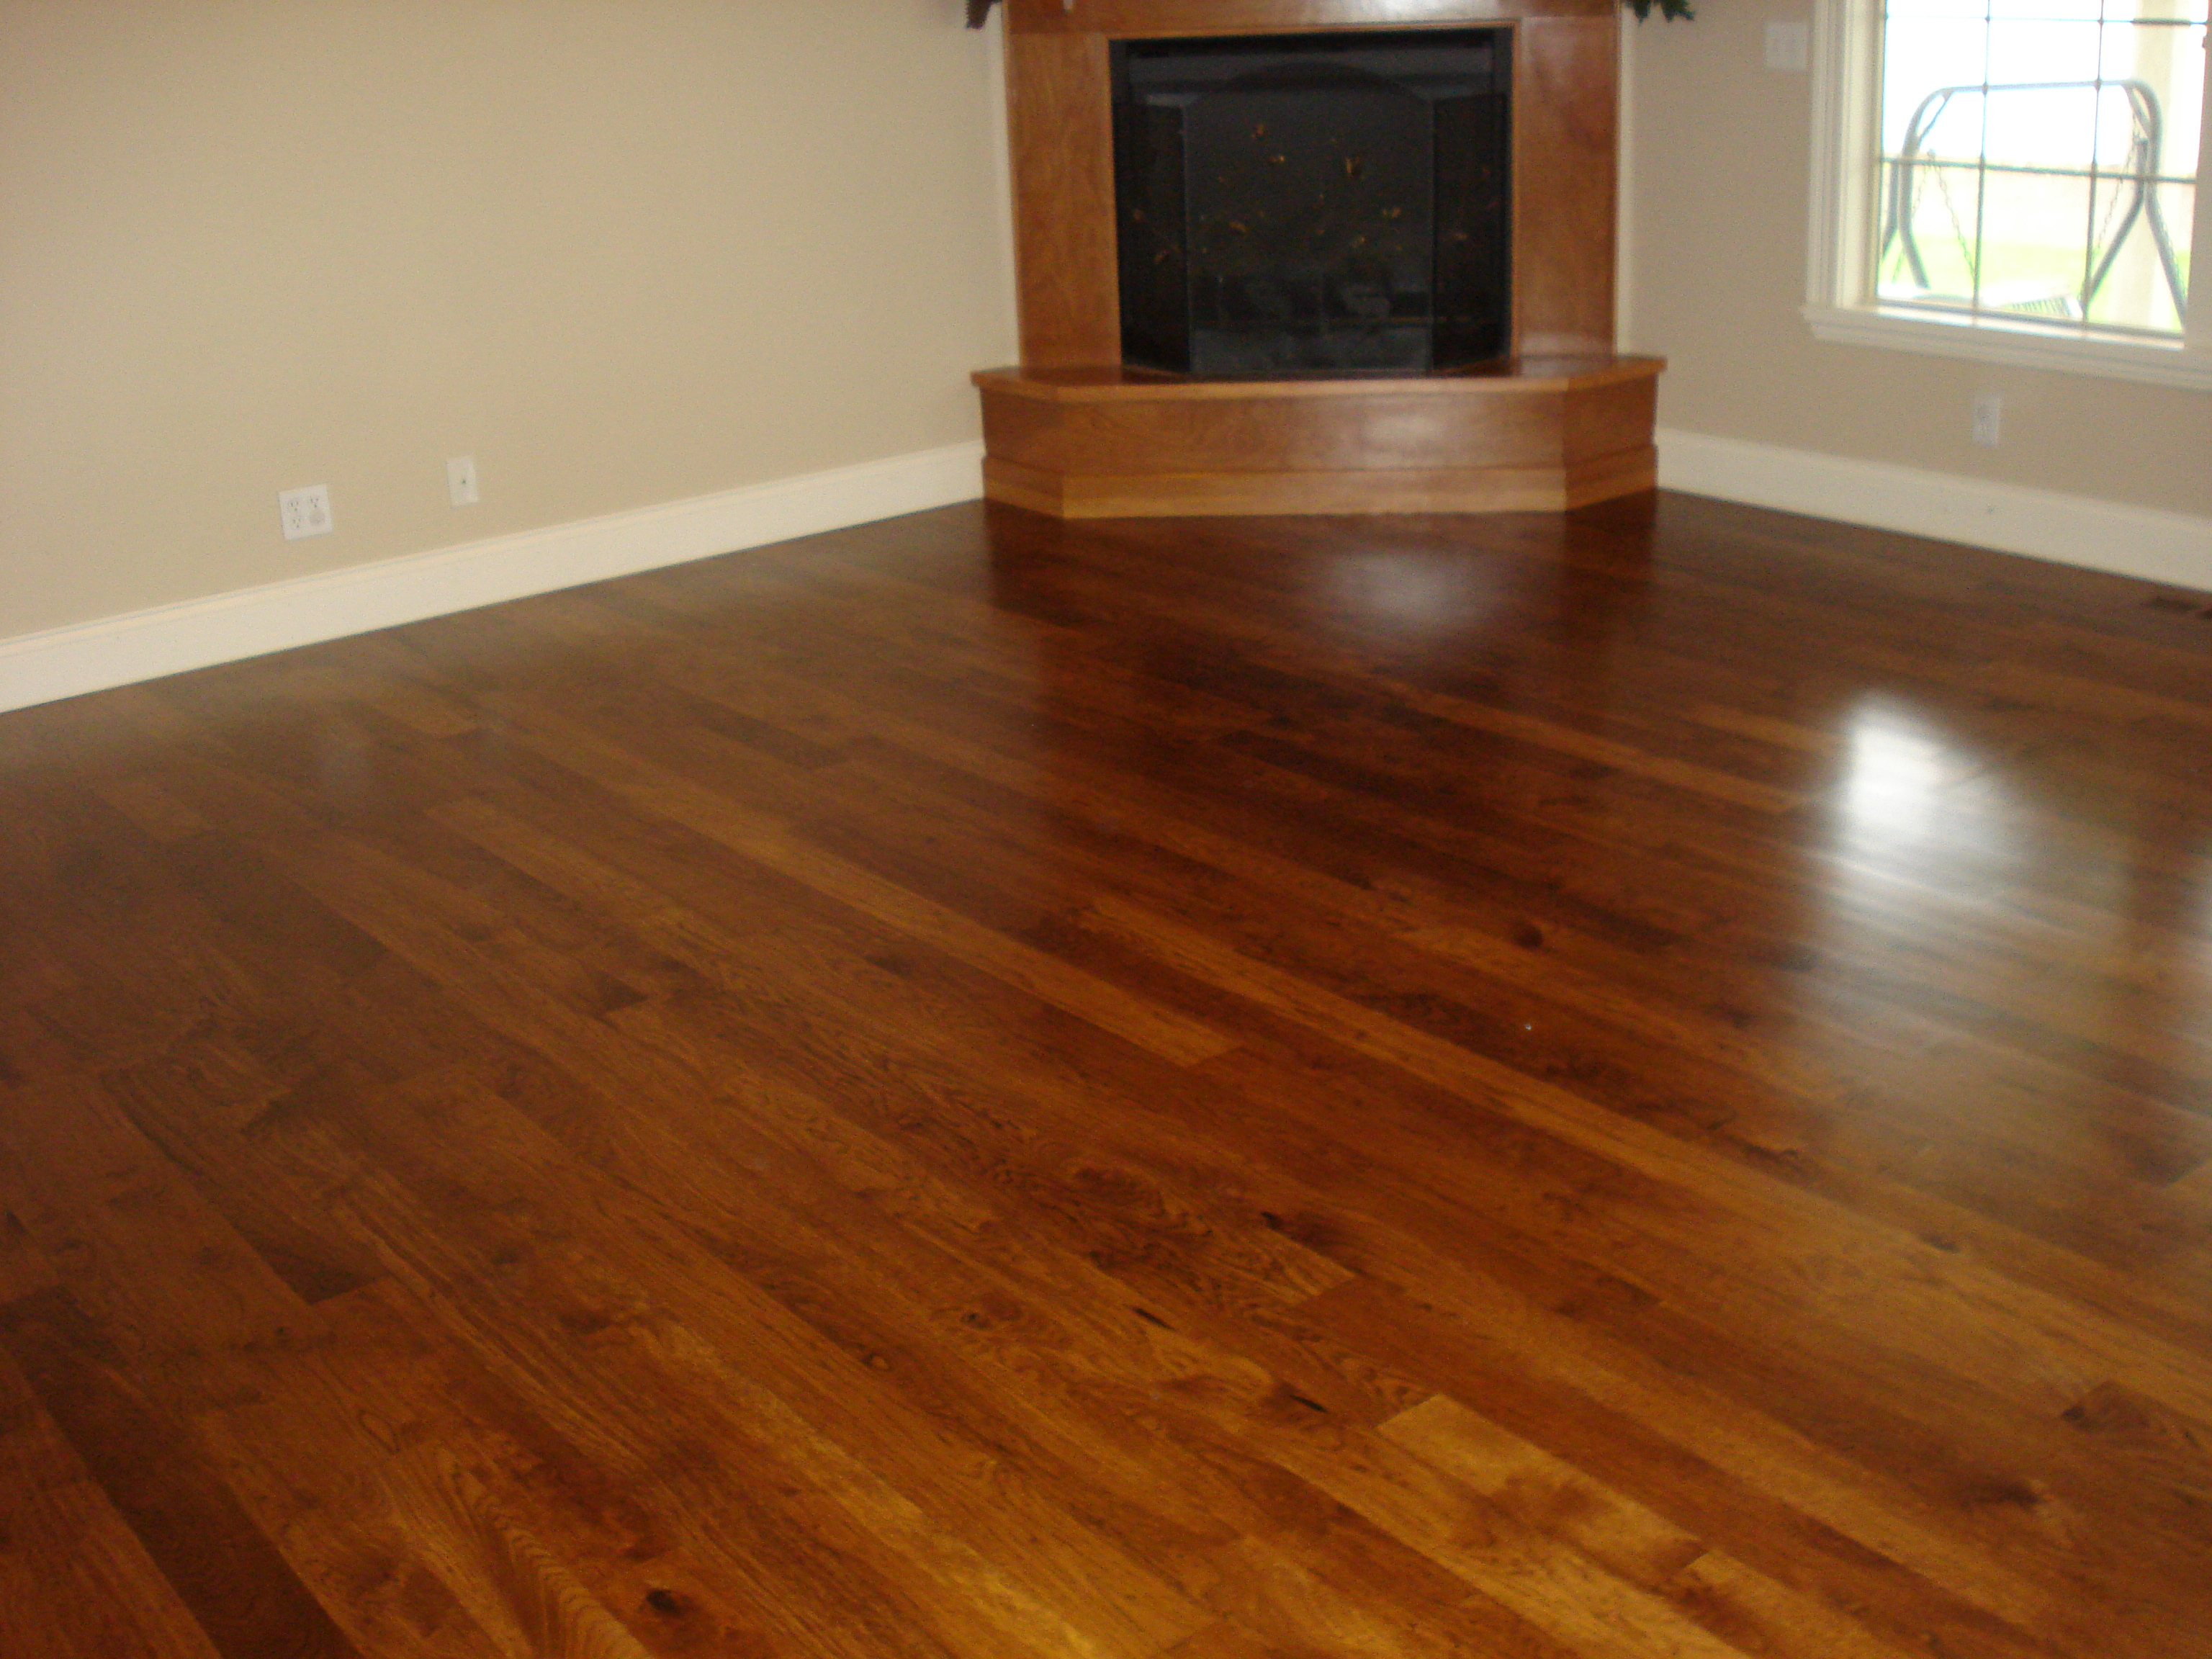 Carson s custom hardwood floors utah hardwood flooring for Hardwood flooring